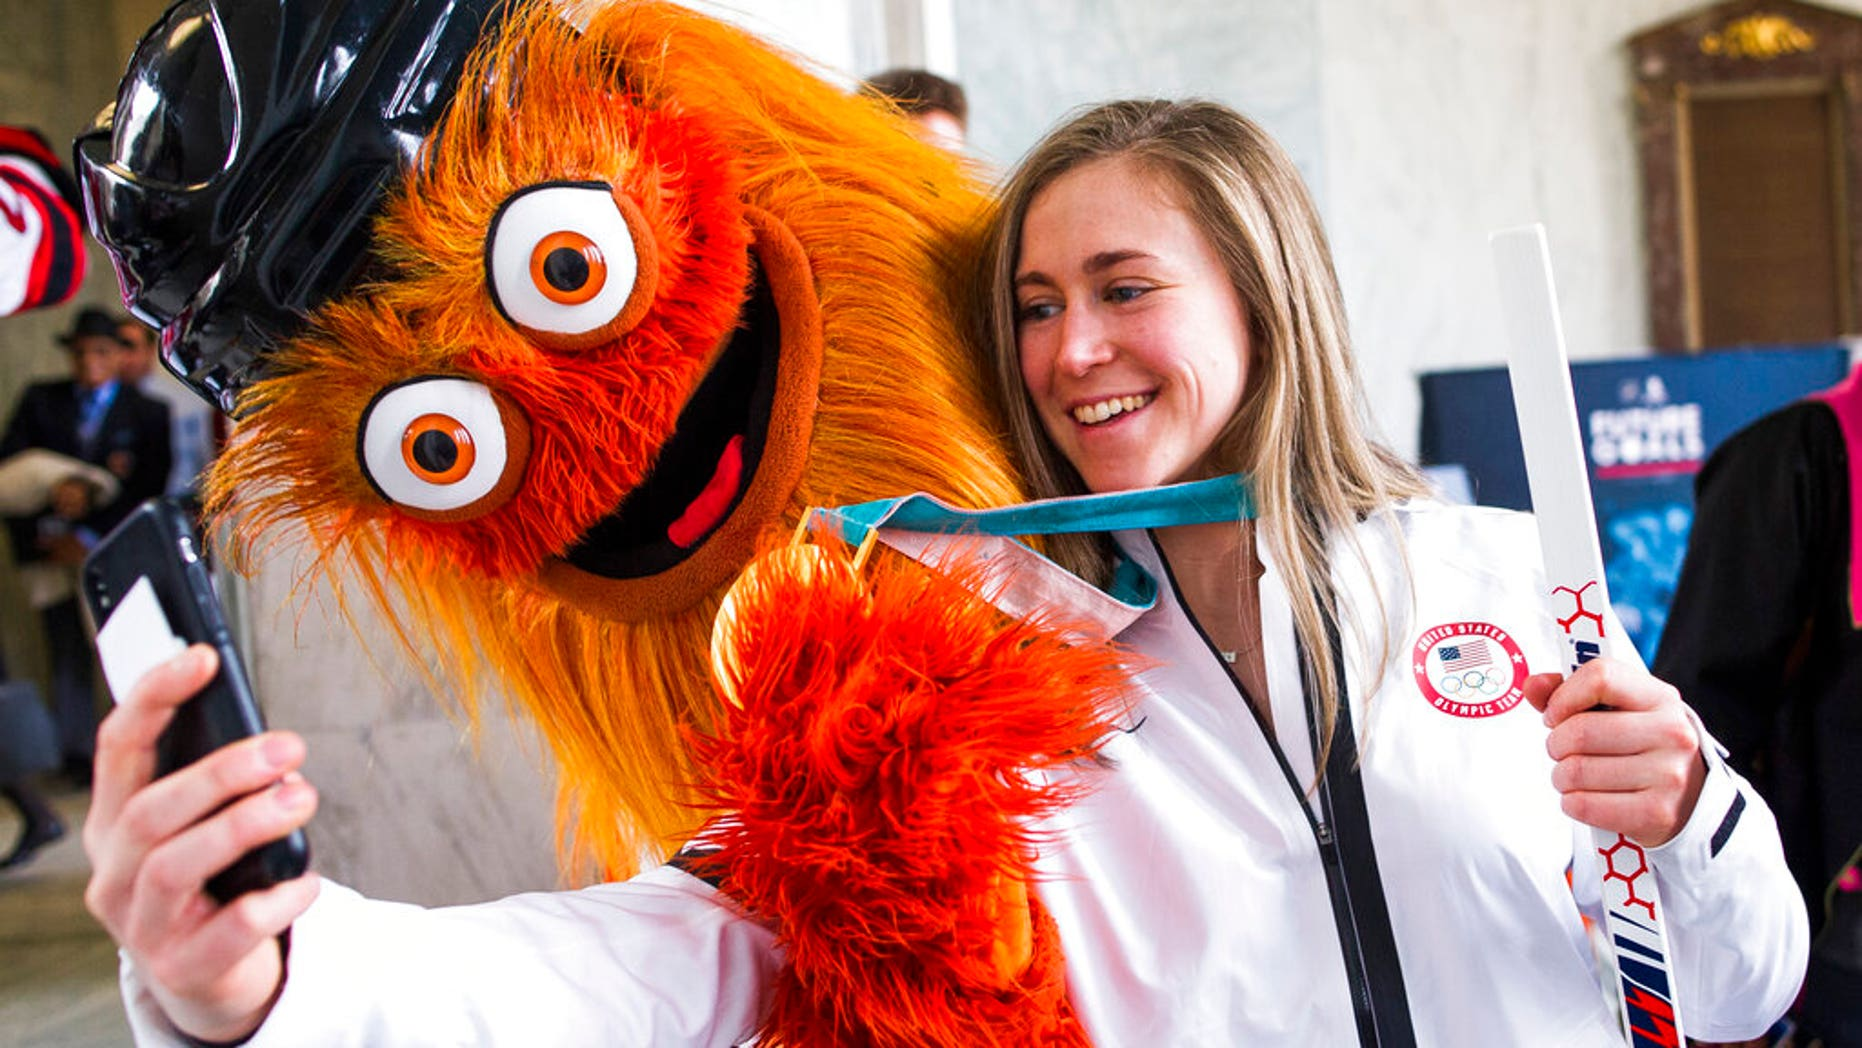 Olympic gold medalist hockey player Haley Skarupa talks a selfie with the NHL Philadelphia Flyers mascot Gritty.